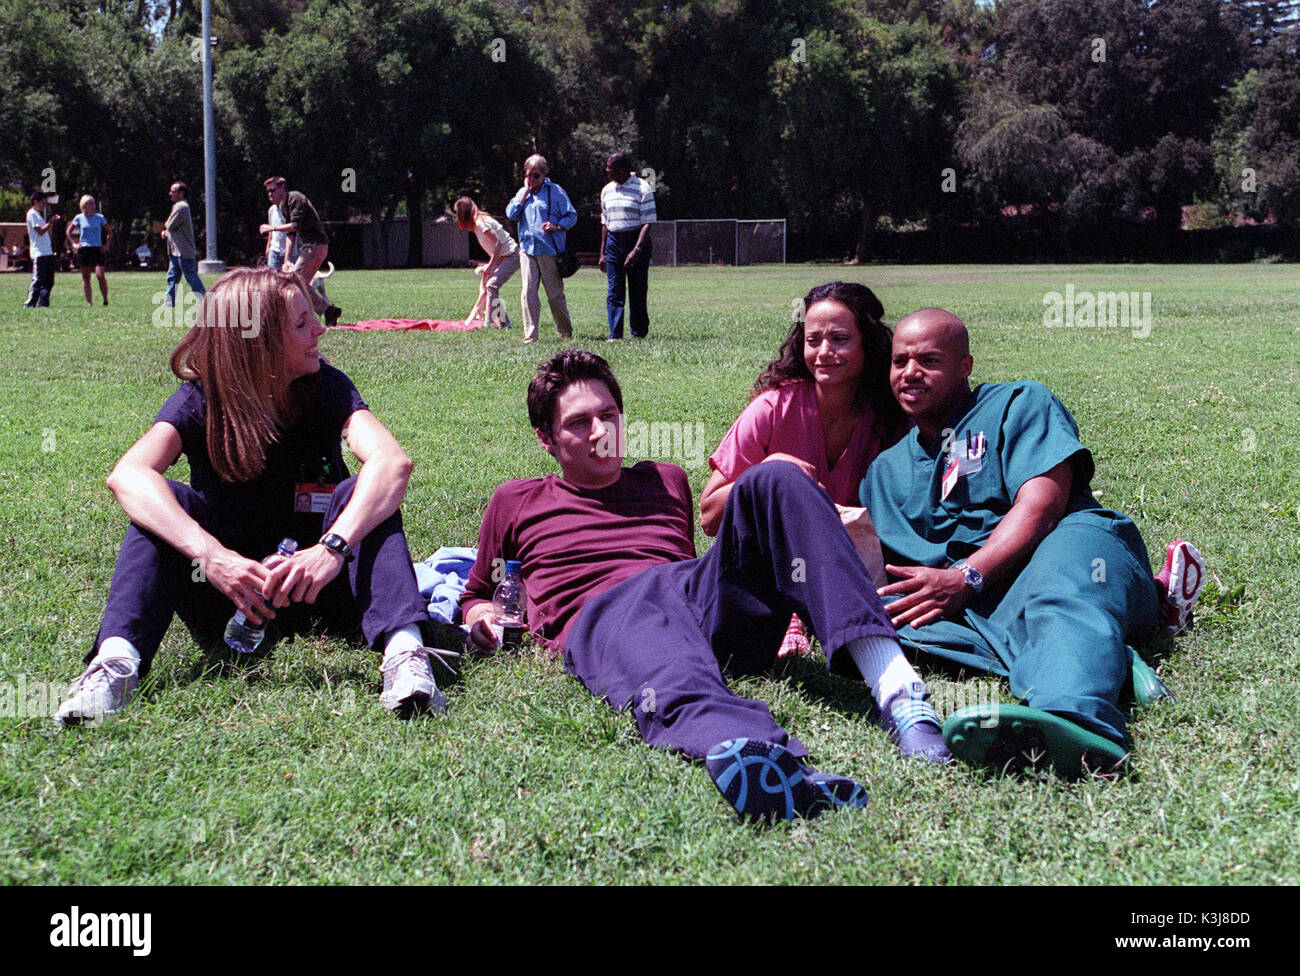 """65214_2_23A - SCRUBS -  """"My Old Lady"""" Ð Three patients show J.D., Elliot and Turk that there is more to being a doctor than they think when """"Scrubs"""" airs Tuesday, October X, 2001 (9:30-10:00 PM ET/PT) on NBC. (TOUCHSTONE TELEVISION/SCOTT HUMBERT) SARAH CHALKE, ZACH BRAFF, JUDY REYES,  DONALD FAISON  SCRUBS [US TV SERIES 2001 -  ]  Series#1/Episode#4/""""My Old Lady""""  SARAH CHALKE as Dr. Elliot Reid,  ZACH BRAFF as Dr. John 'J.D.' Dorian,  JUDY REYES as Nurse Carla Espinosa,  DONALD FAISON as Dr. Chris Turk      """"My Old Lady"""" РThree patients show  - Stock Image"""